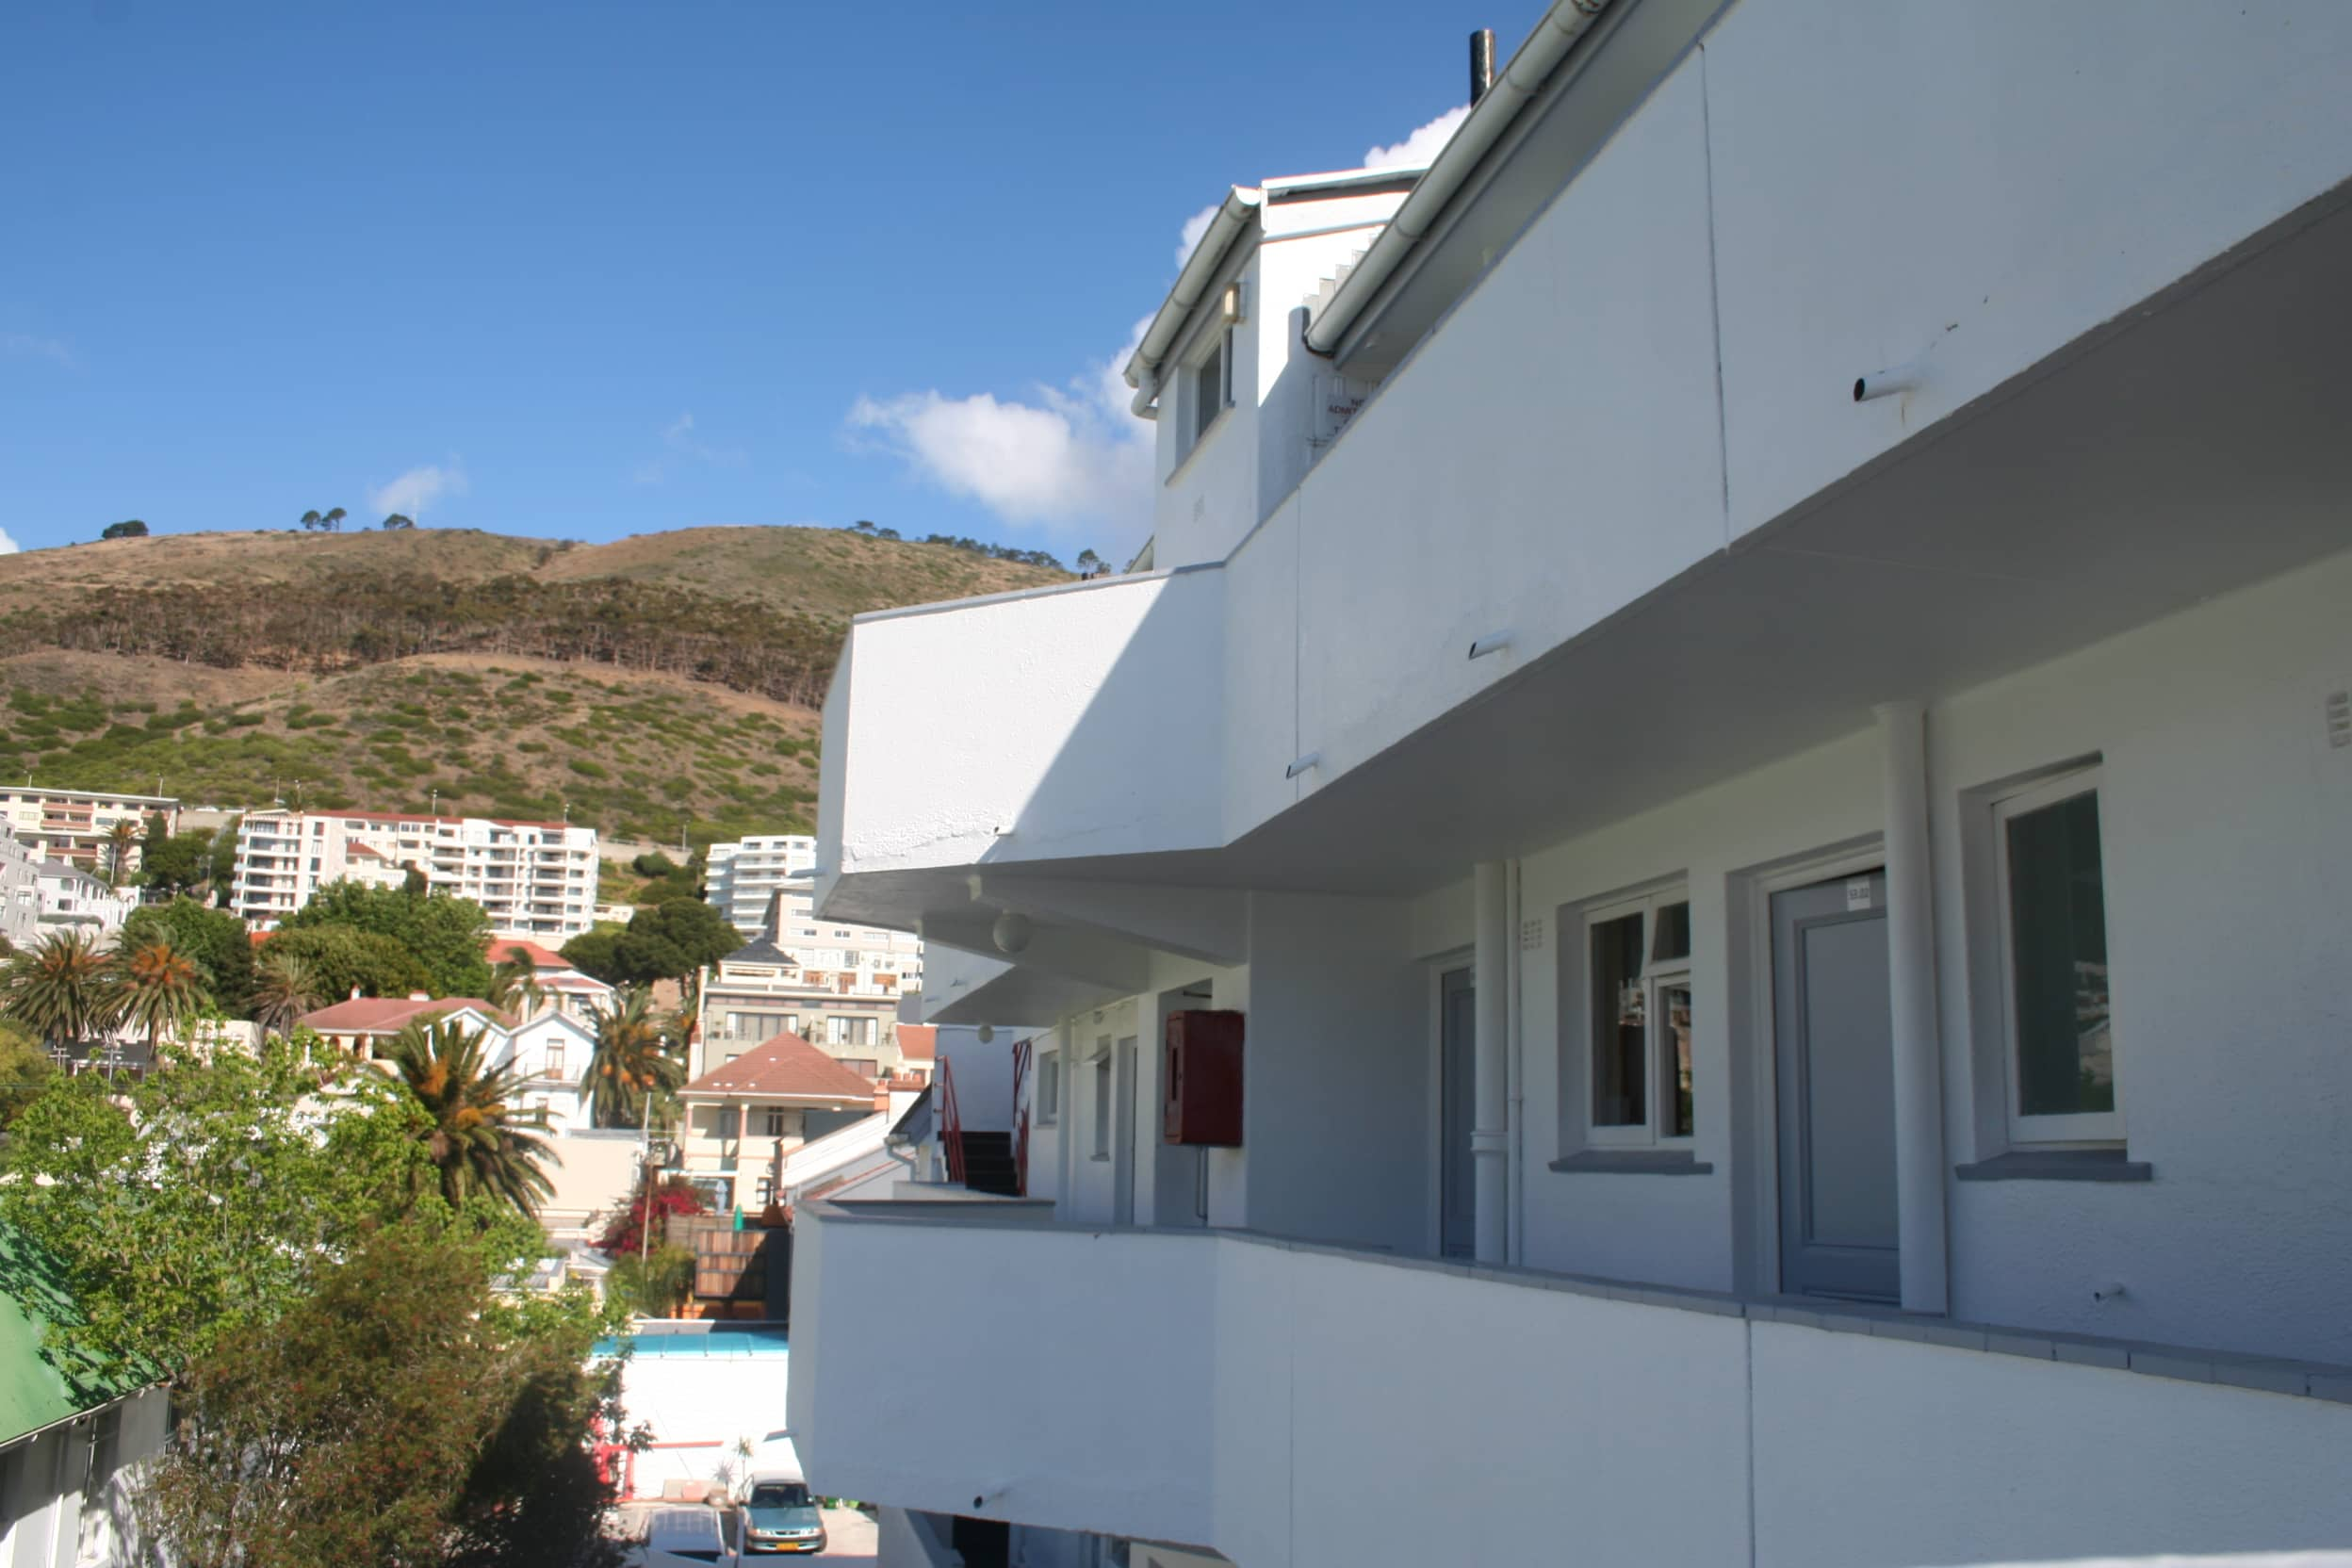 LAL-CPT-Accommodation-On-site-Exterior-001-min.jpg